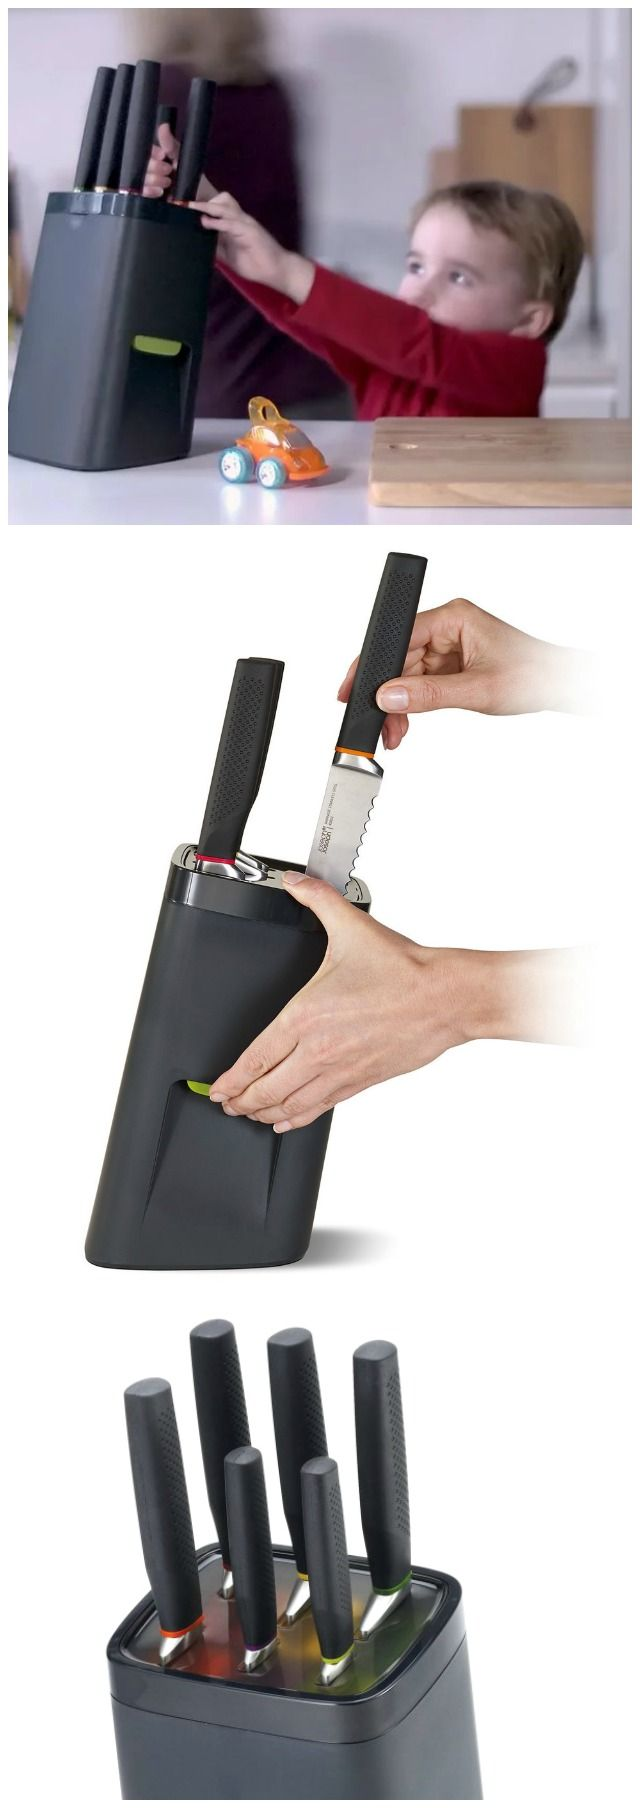 Joseph Joseph LockBlock - child safe knife block.